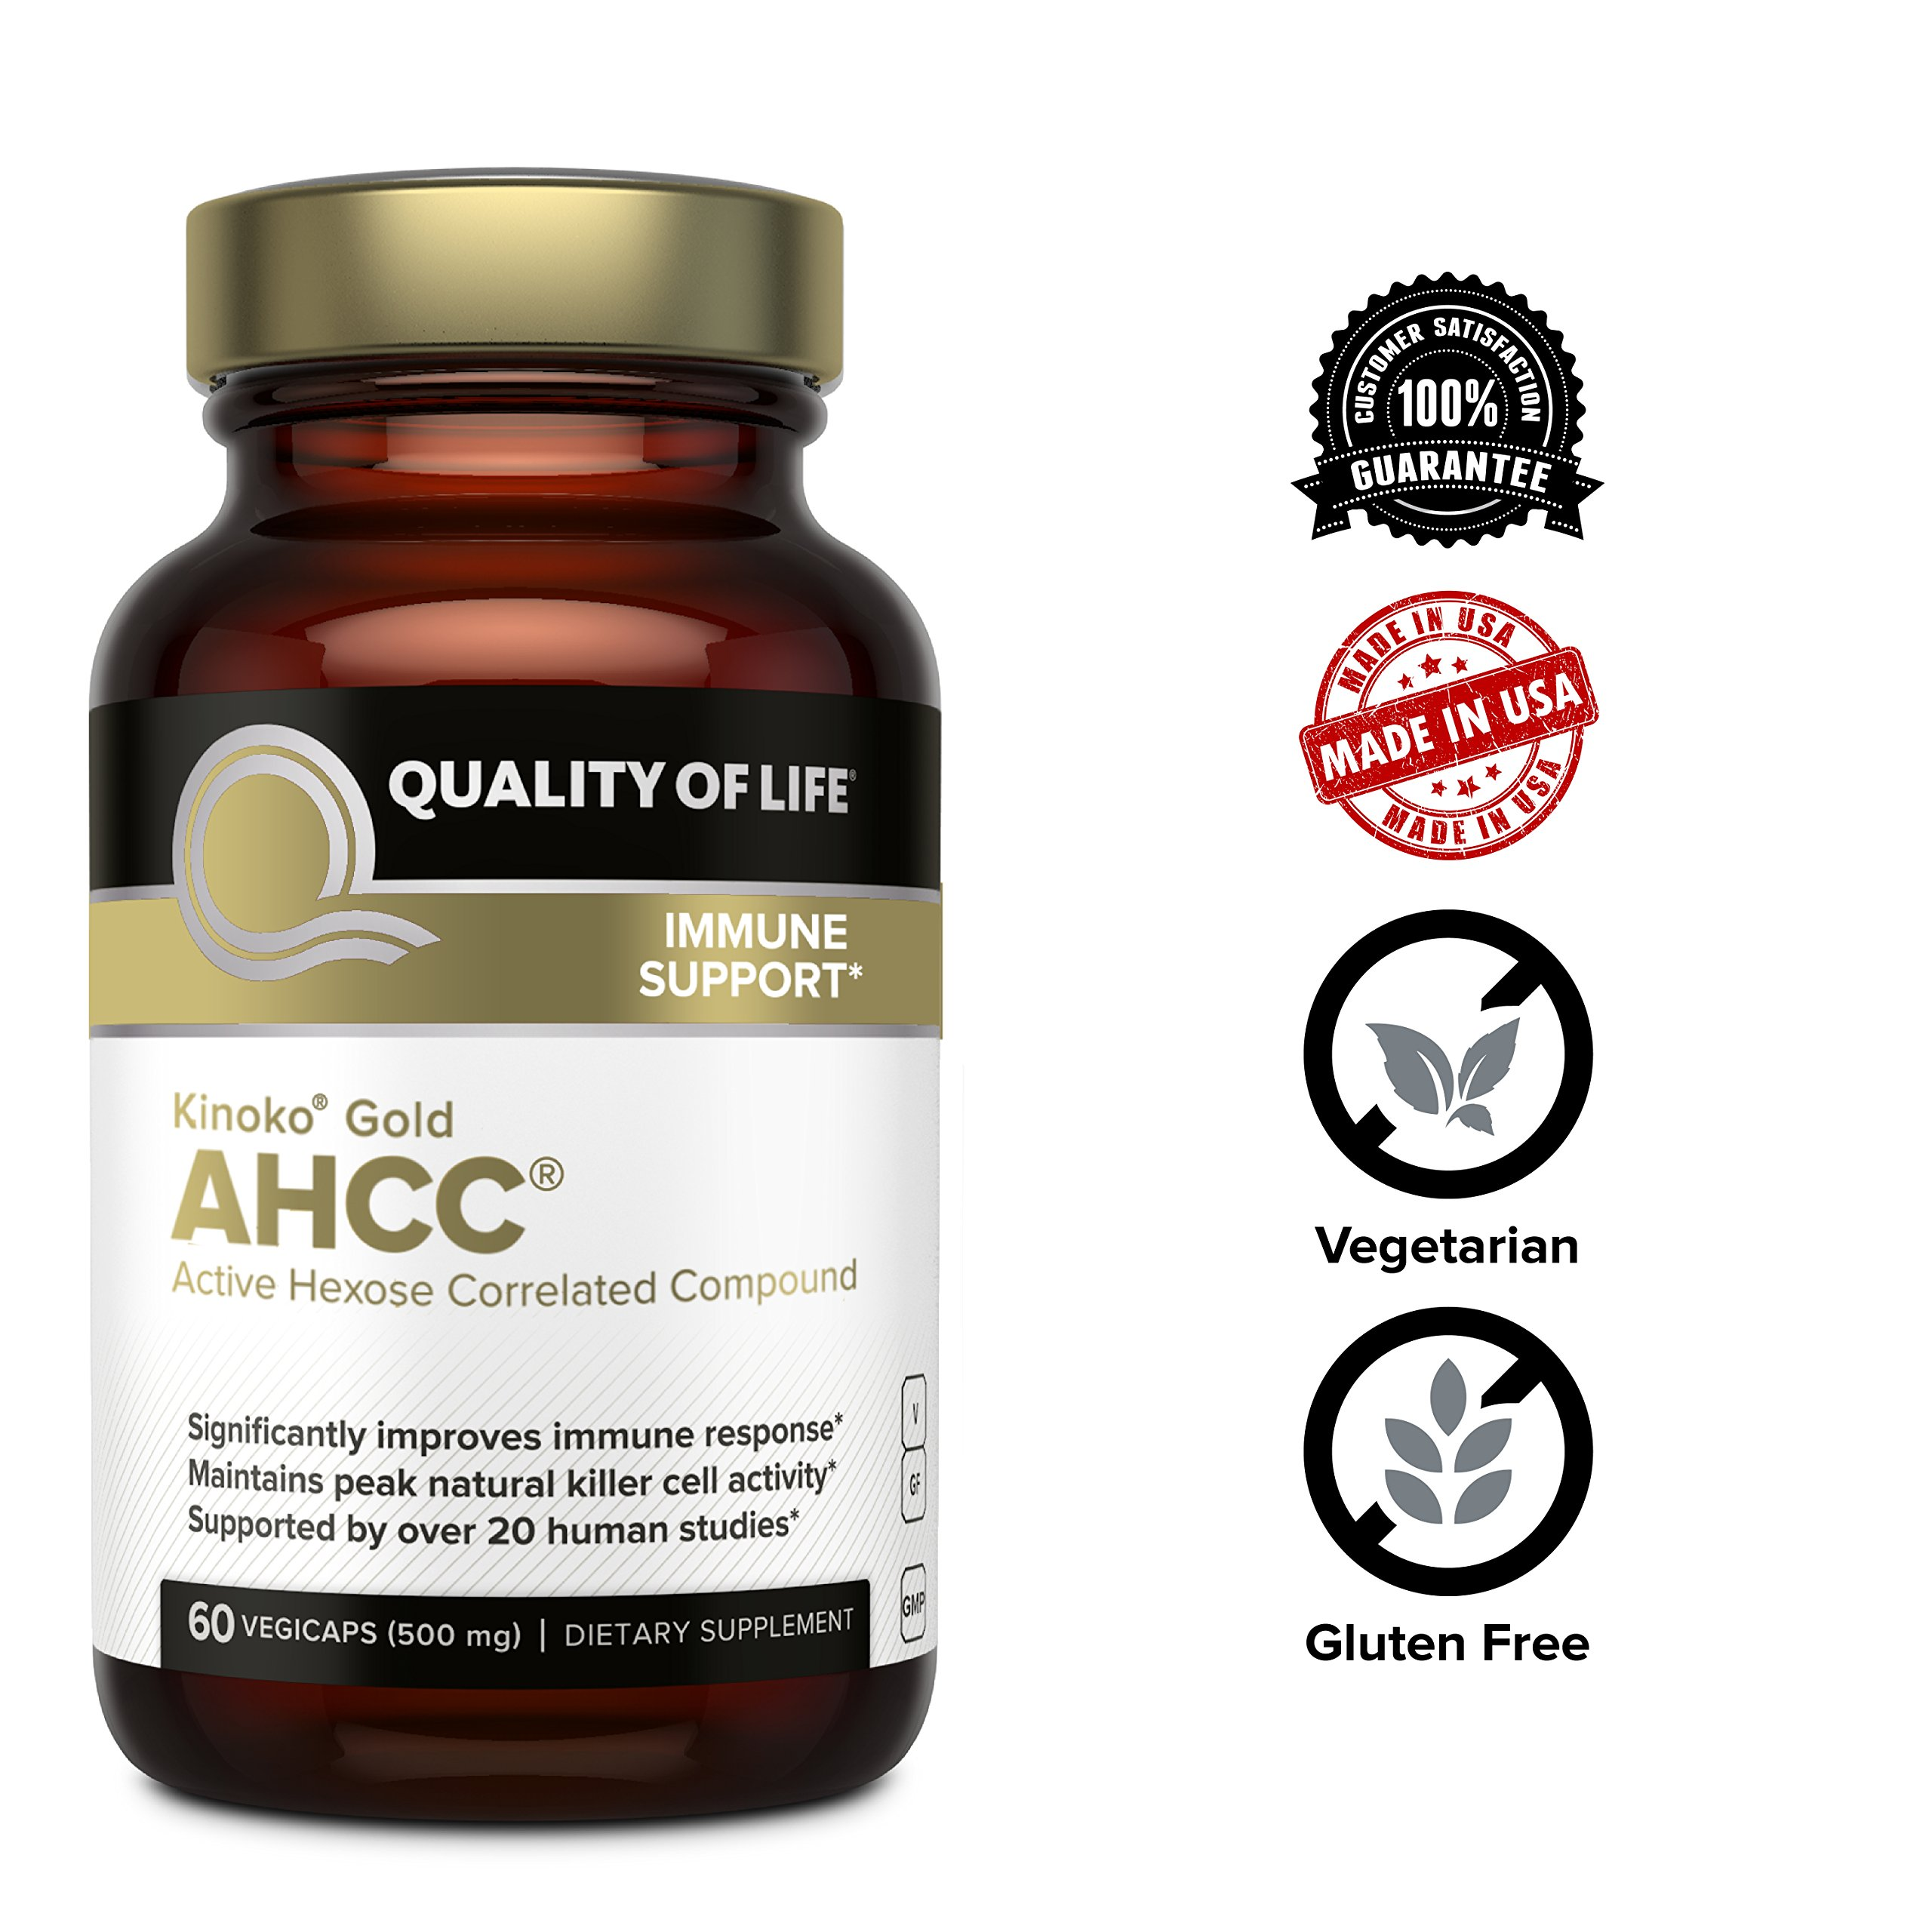 Premium Kinoko Gold AHCC Supplement-500mg of AHCC per Capsule-Supports Immune Health, Liver Function, Maintains Natural Killer Cell Activity & Enhances Cytokine Production-60 Veggie Capsules by Quality of Life (Image #6)